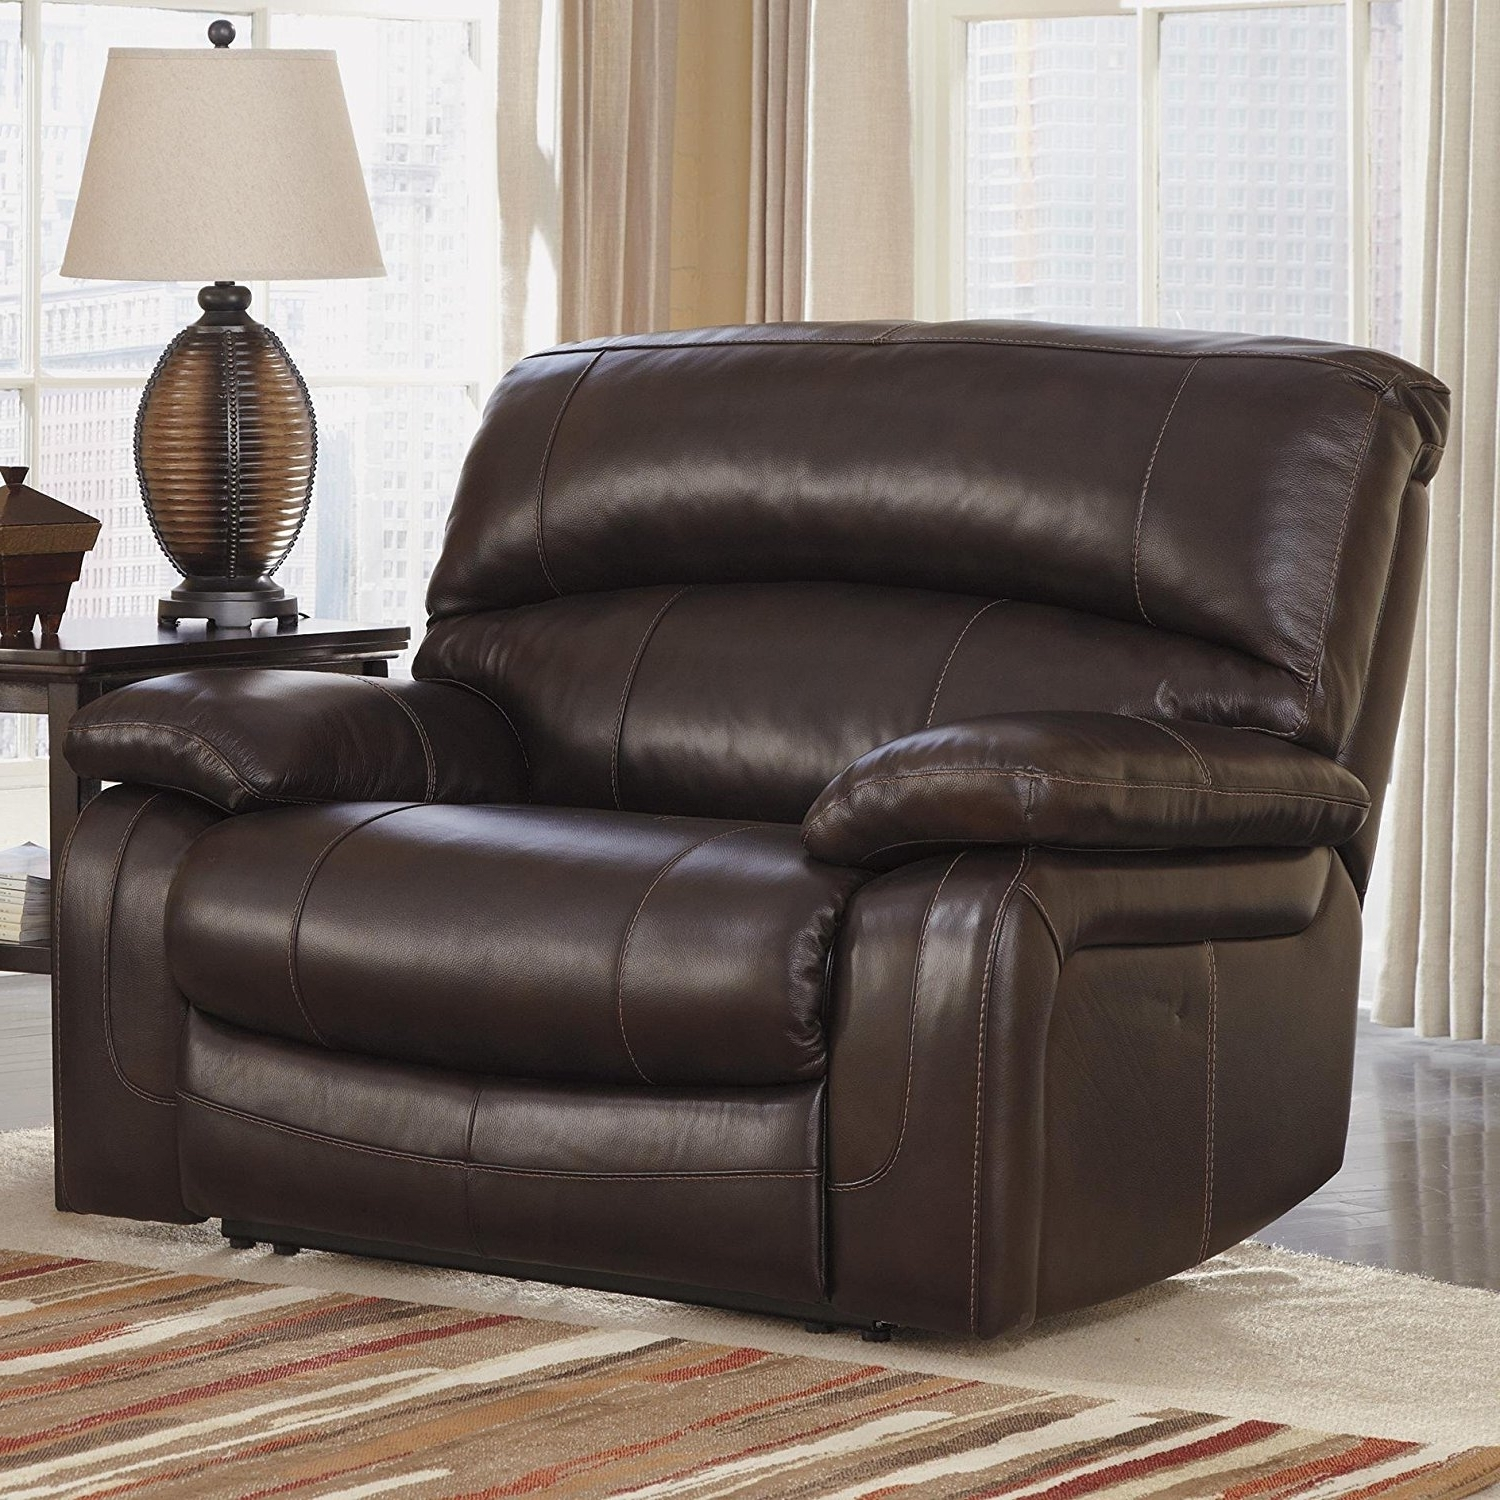 Ikea Recliners Sale Modern Sleeper Sofa Living Room Furniture Throughout 2019 Big Sofa Chairs (View 6 of 20)